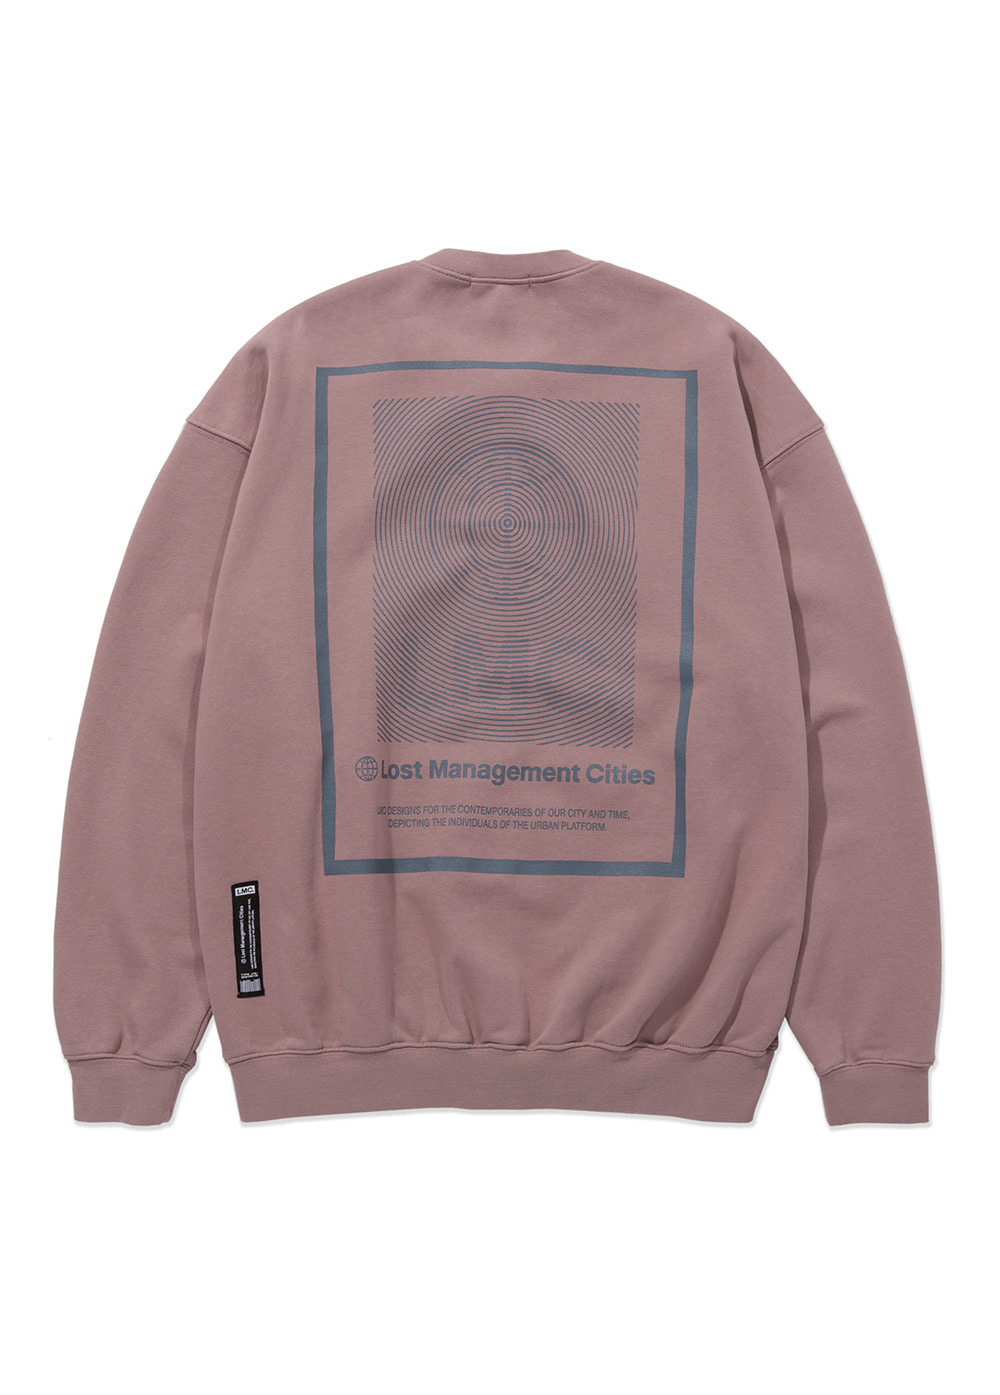 LMC BORDER OVERSIZED ZIP-UP SWEATSHIRT ash pink